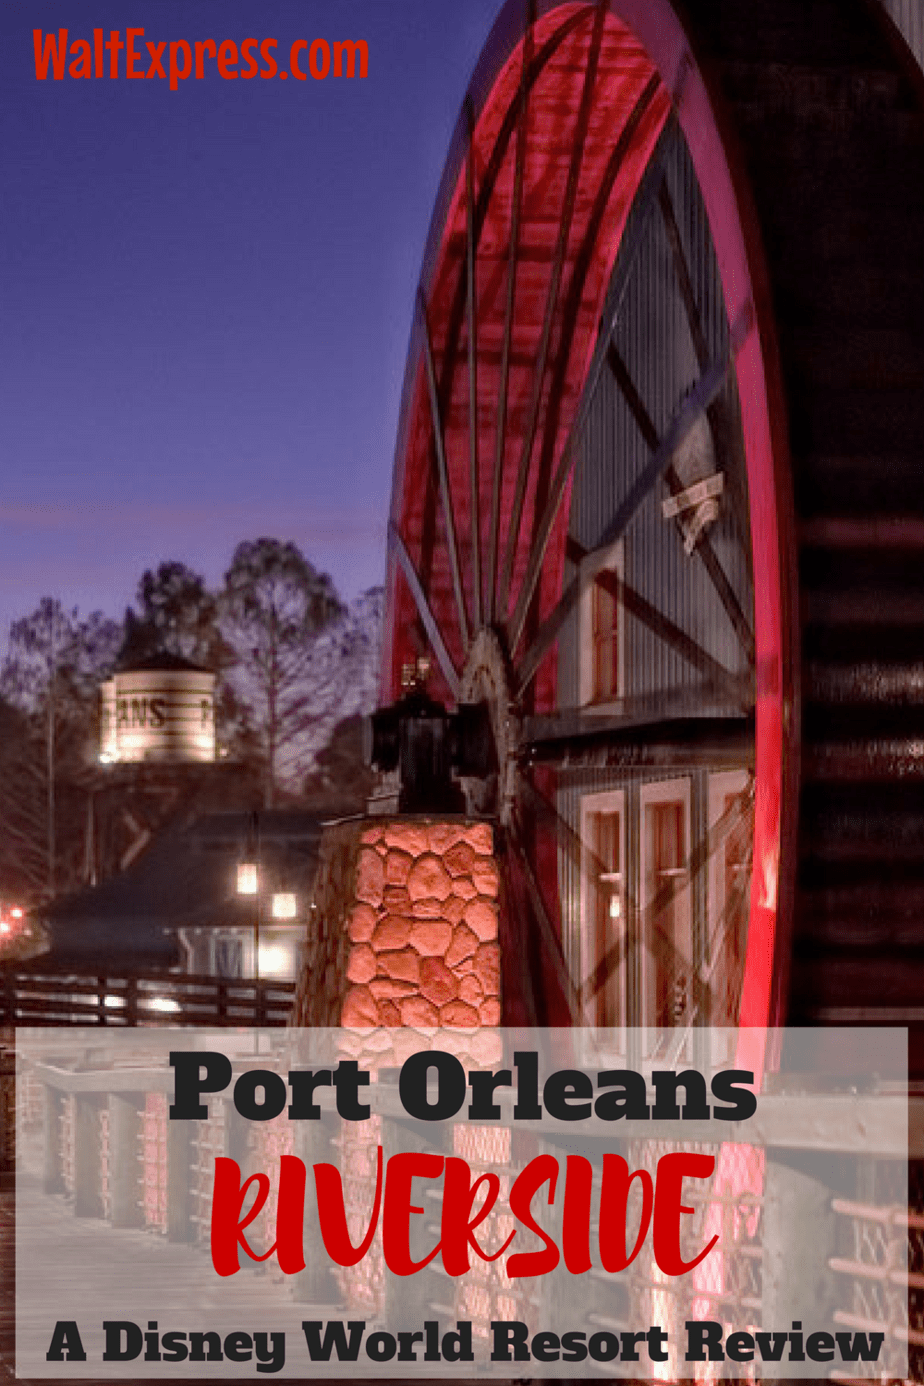 Port Orleans Riverside: A Disney World Resort Review